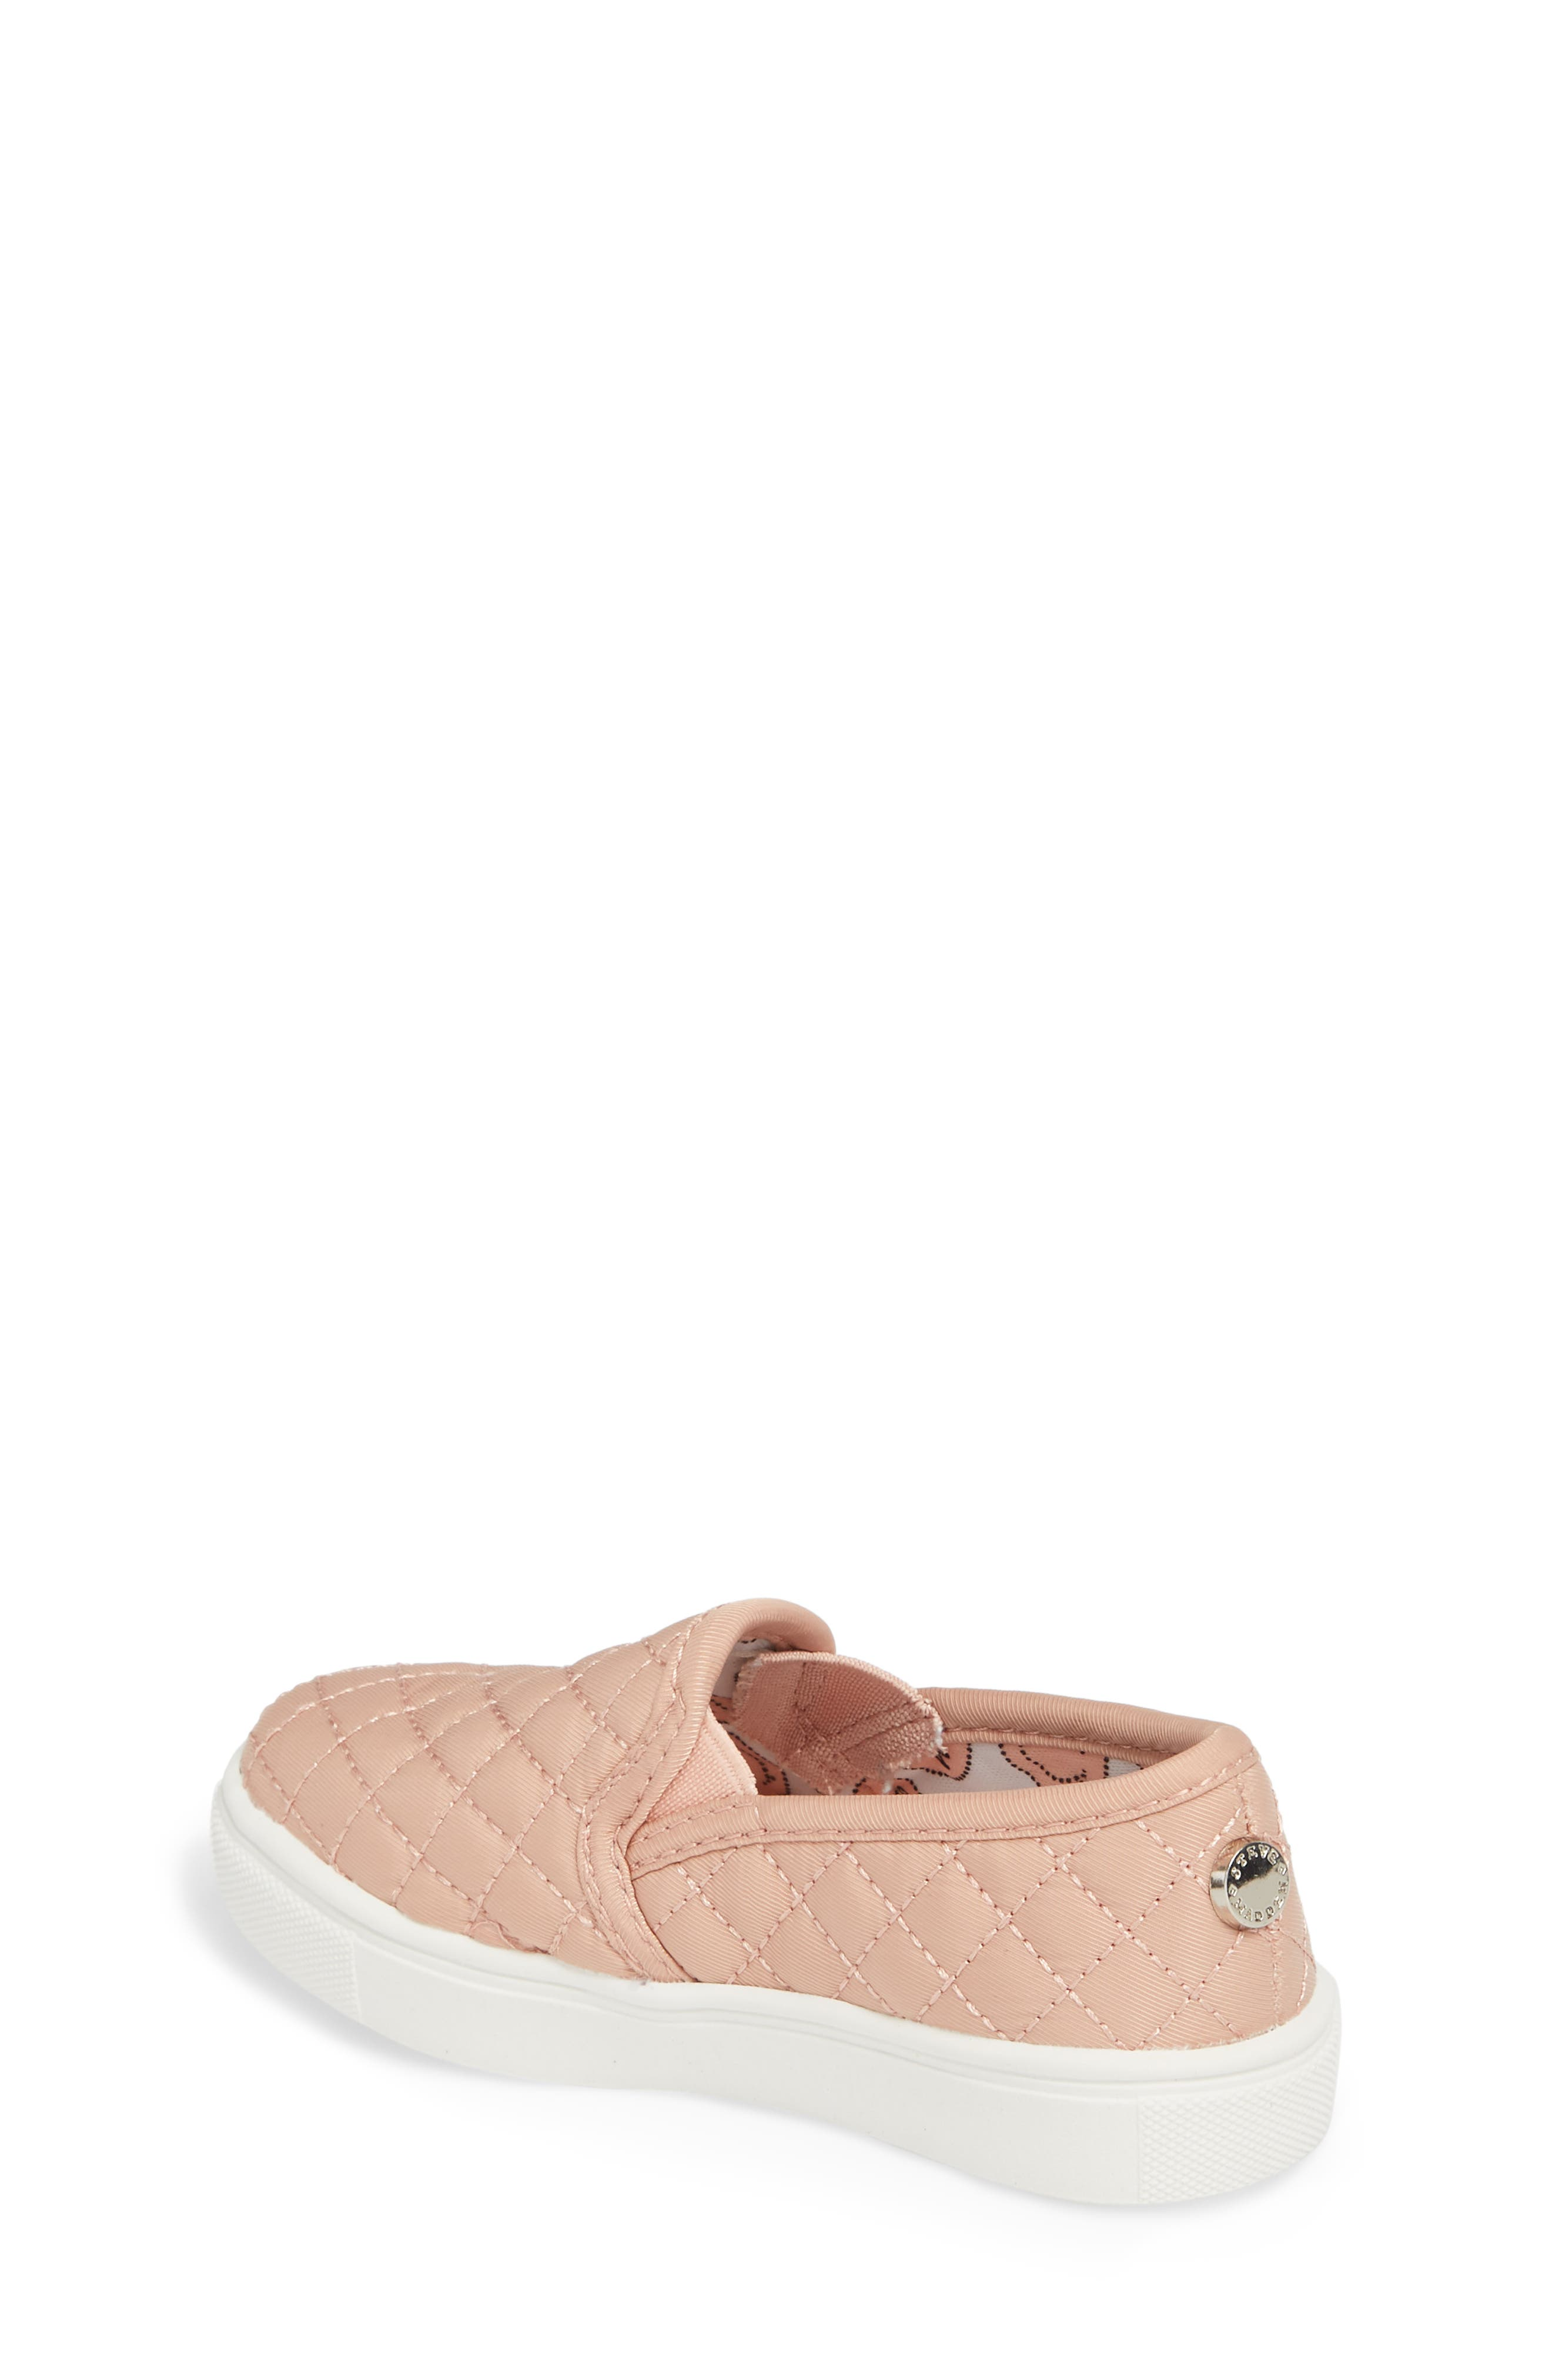 Tecntrc Quilted Slip-On Sneaker,                             Alternate thumbnail 2, color,                             BLUSH